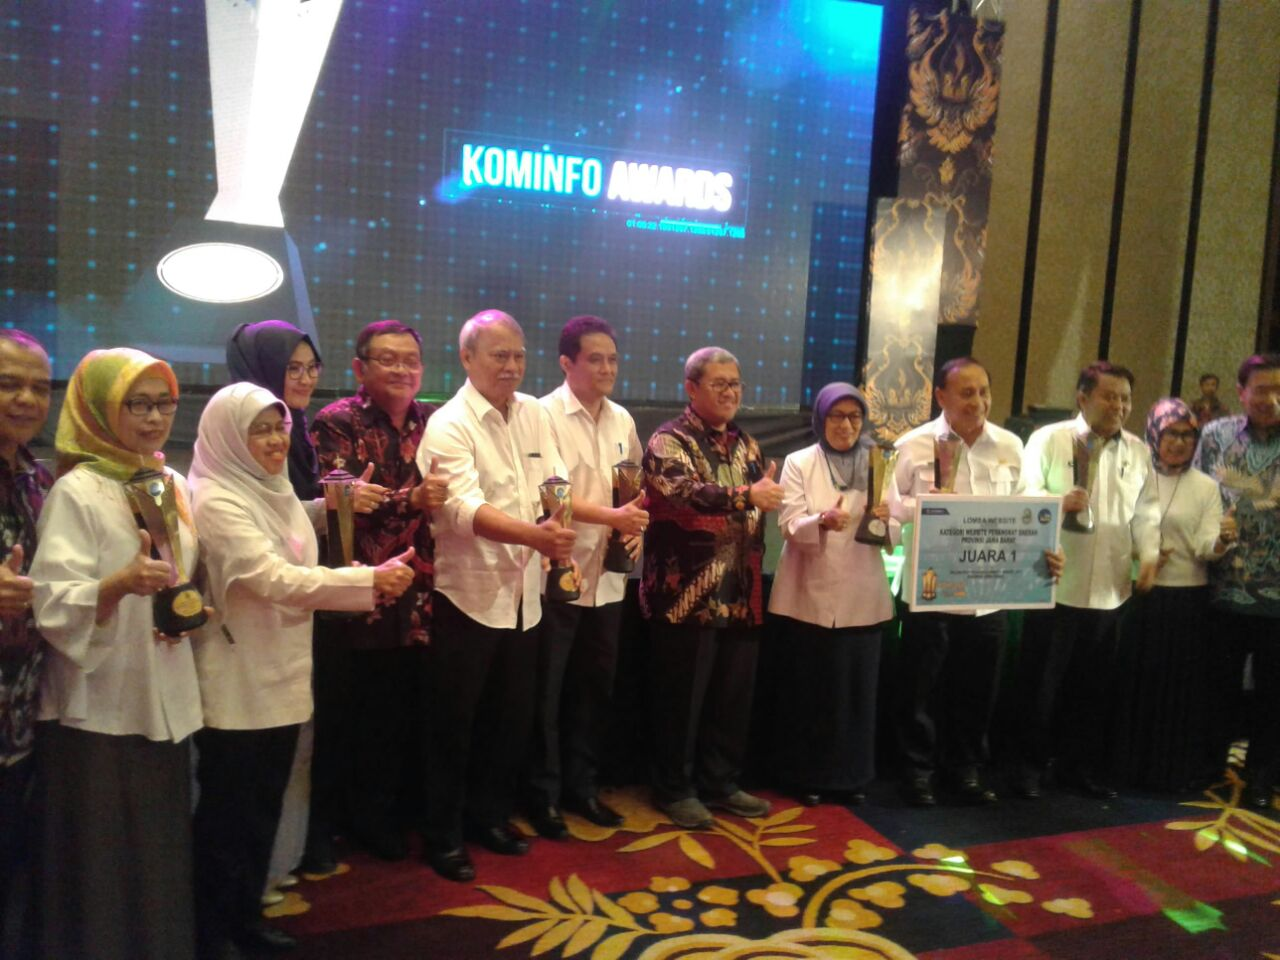 Kominfo Awards 2017